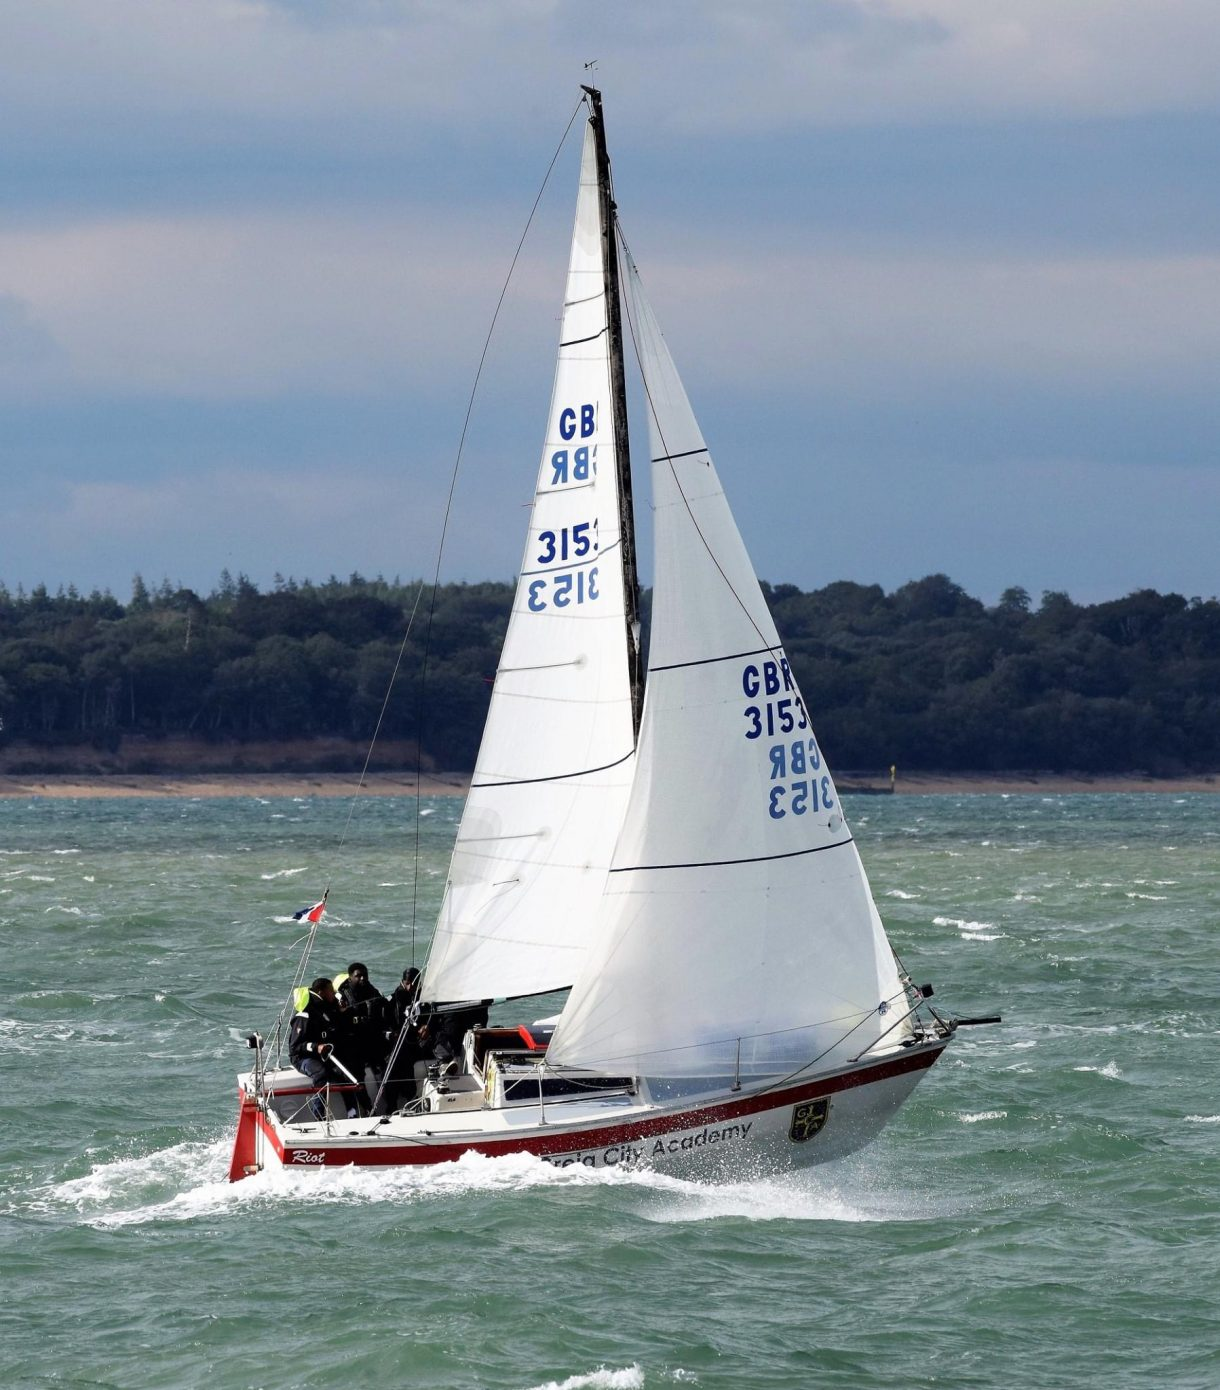 Riot from the scaramouche sailing trust